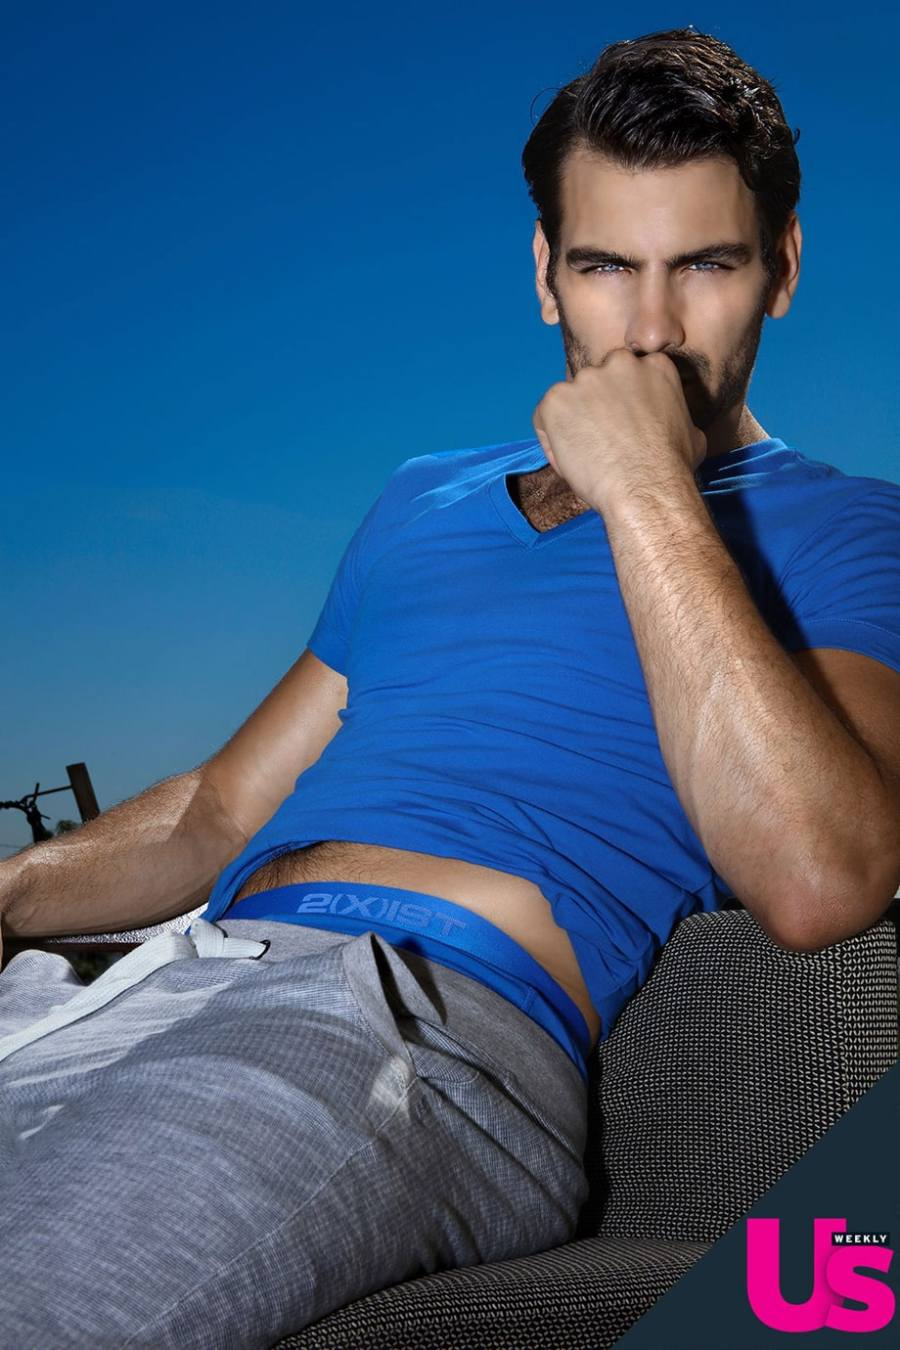 Nyle DiMarco is a man of many accomplishments: He's an America's Next Top Model winner, current Dancing With the Stars contestant and 2(X)IST underwear's new brand ambassador. (Hot damn!) Scroll to see Us Weekly's exclusive sneak peek at his campaign. And make sure to check the label's Twitter and Instagram pages (handle: @official2xist) for more sexy pics the upcoming months!